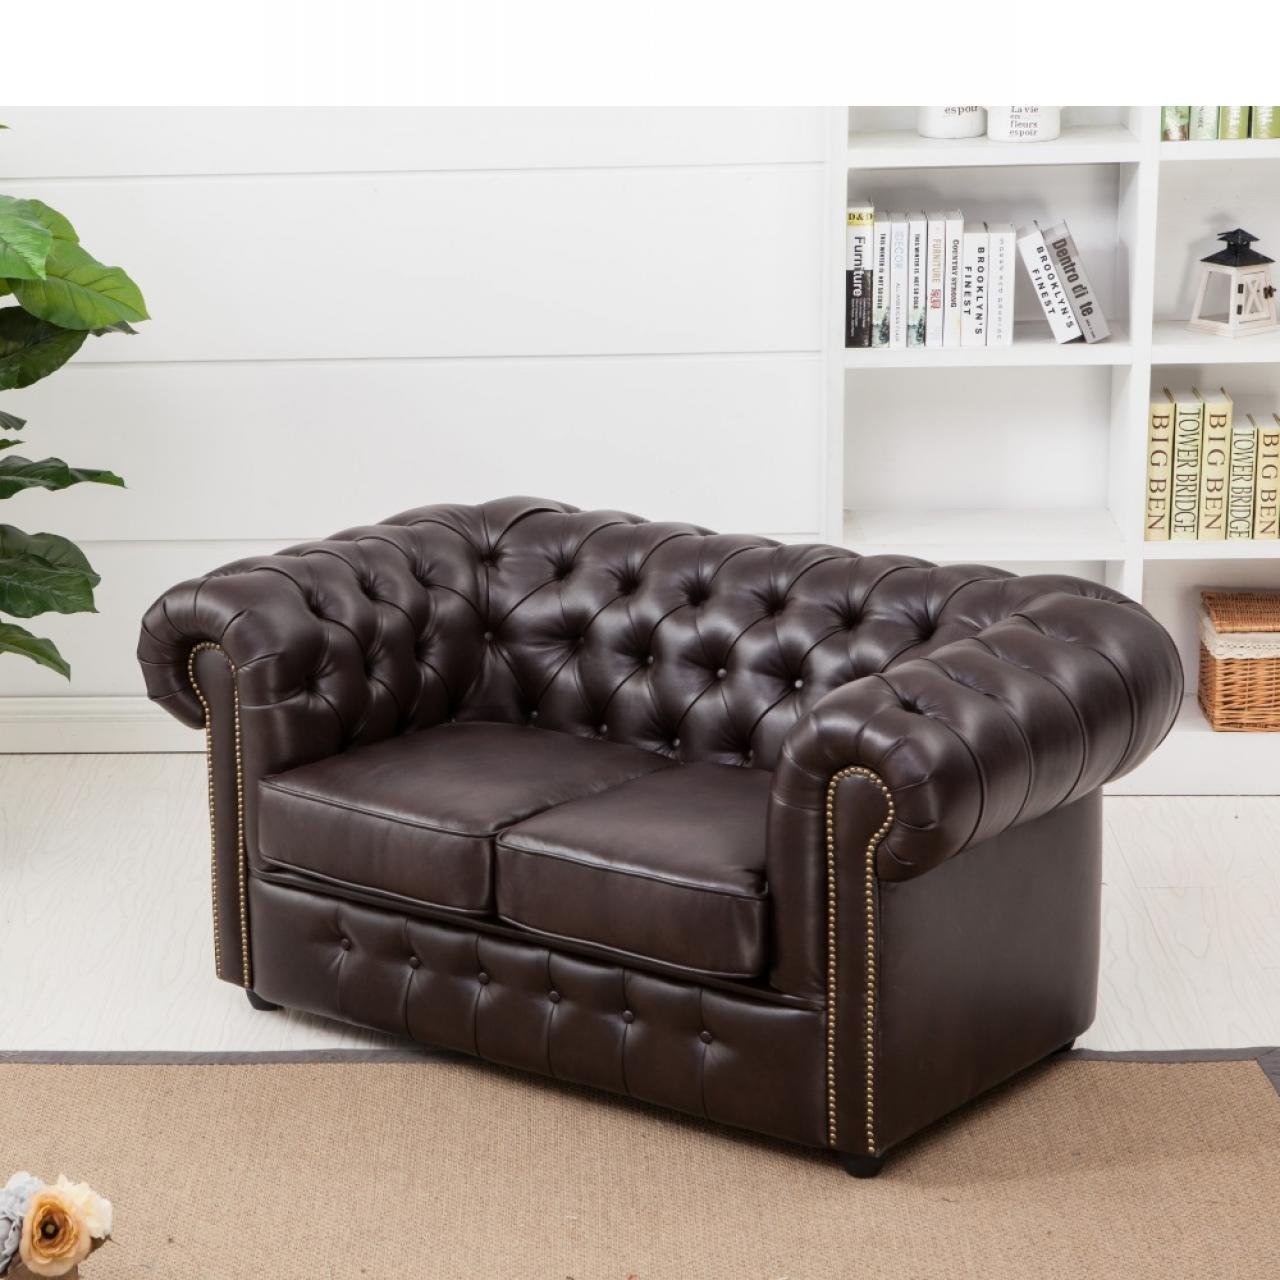 2-Sitzer Chesterfield Sofa